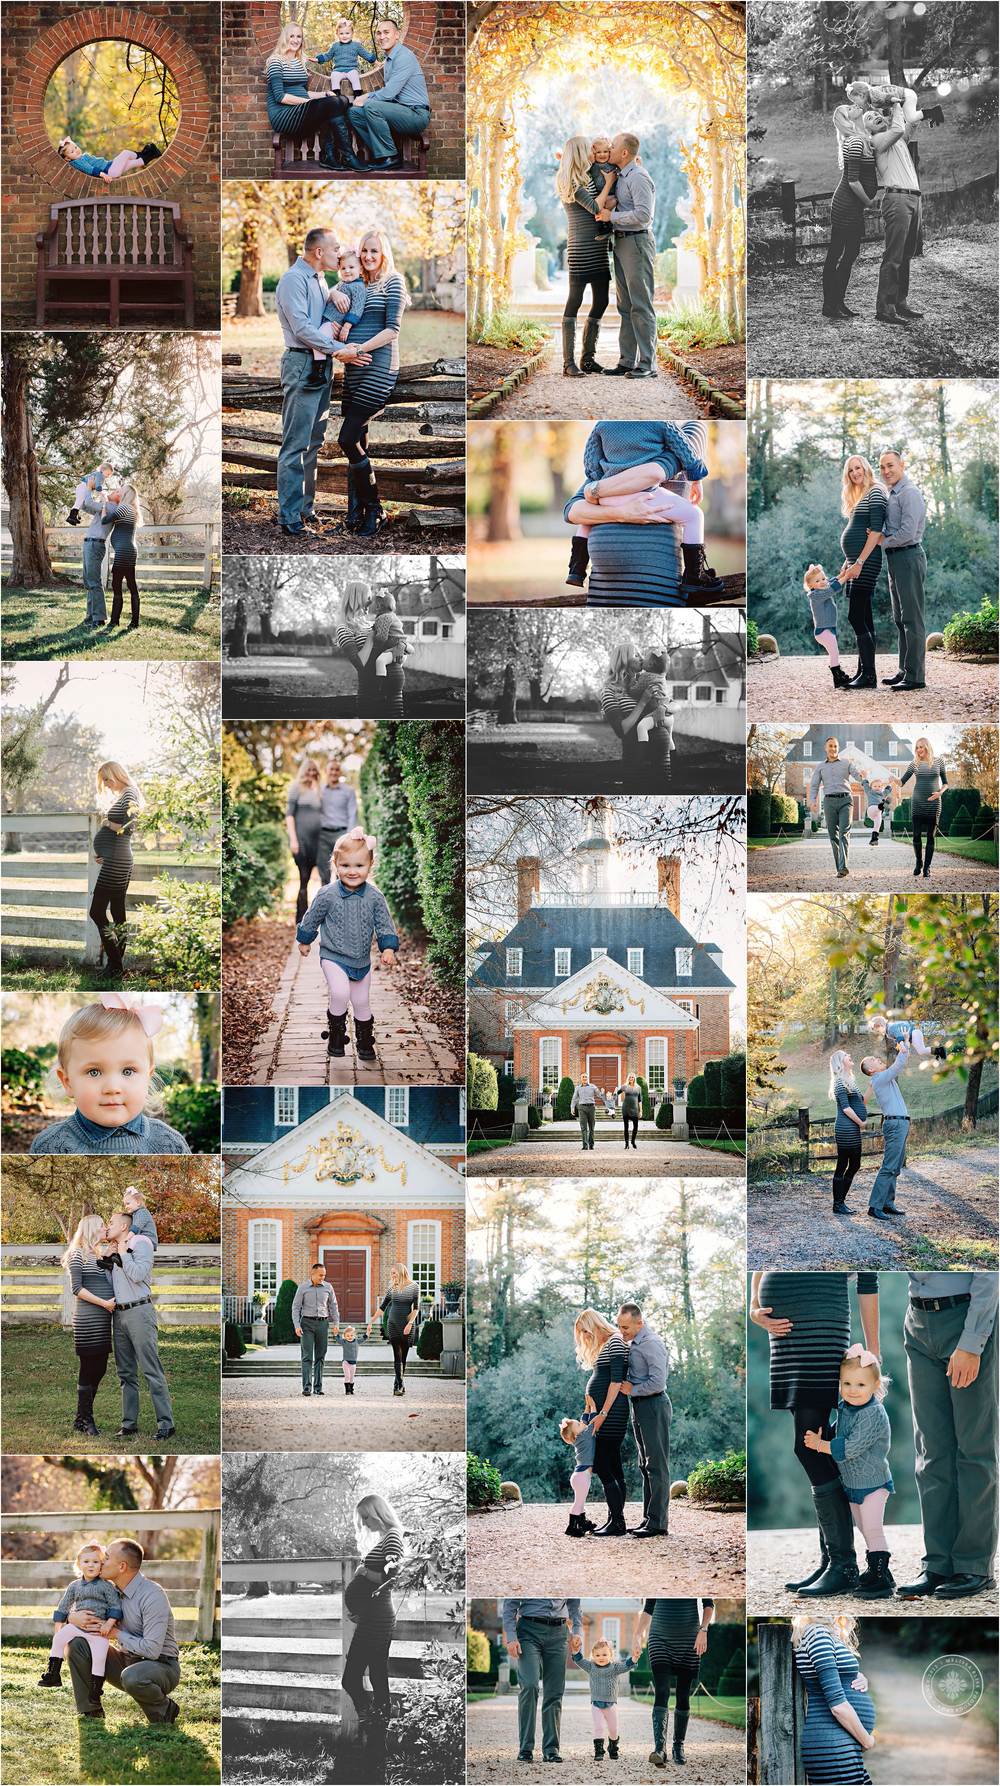 maternity-photography-maternity-posing-family-maternity-session-williamsburg-va-fall-photo-session-ideas-maternity-portraits